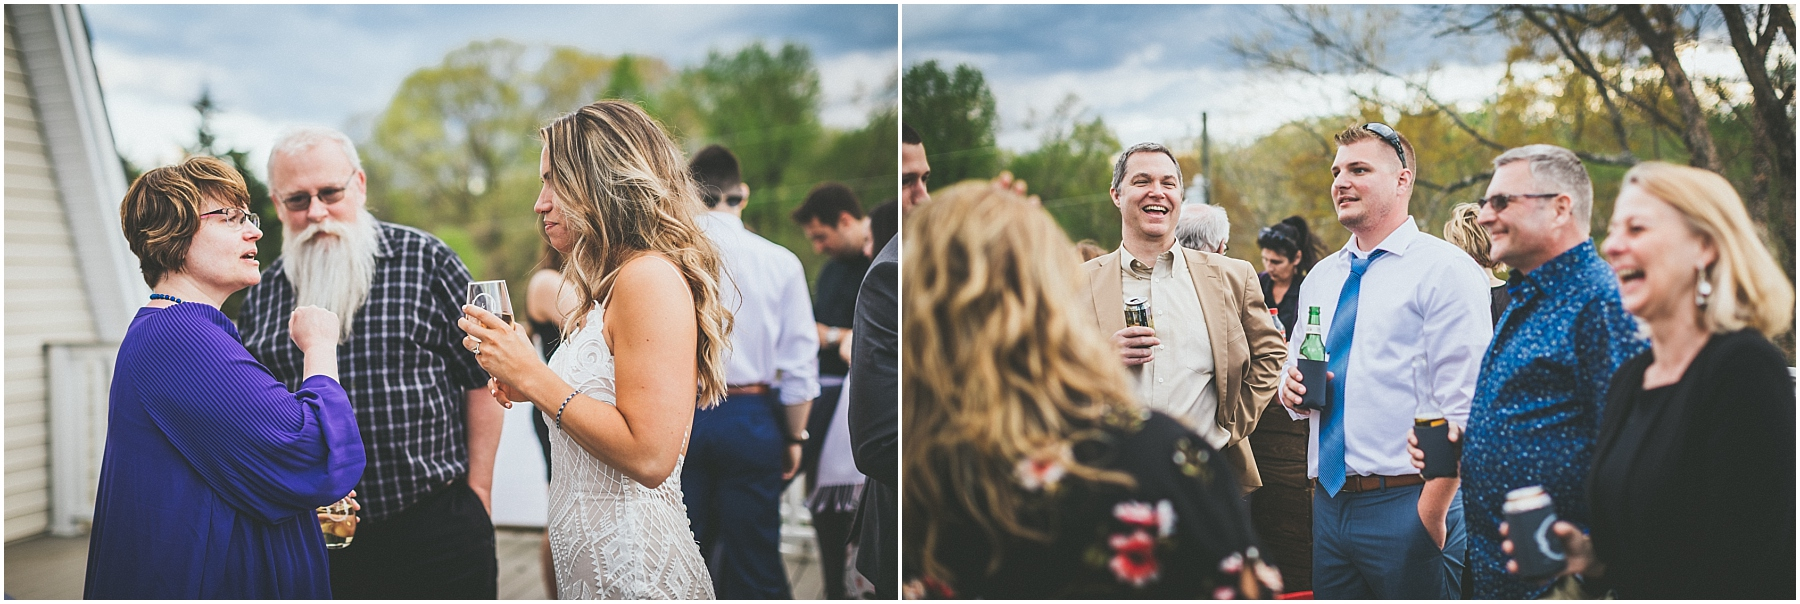 fingerlakesweddingphotography_1716.jpg